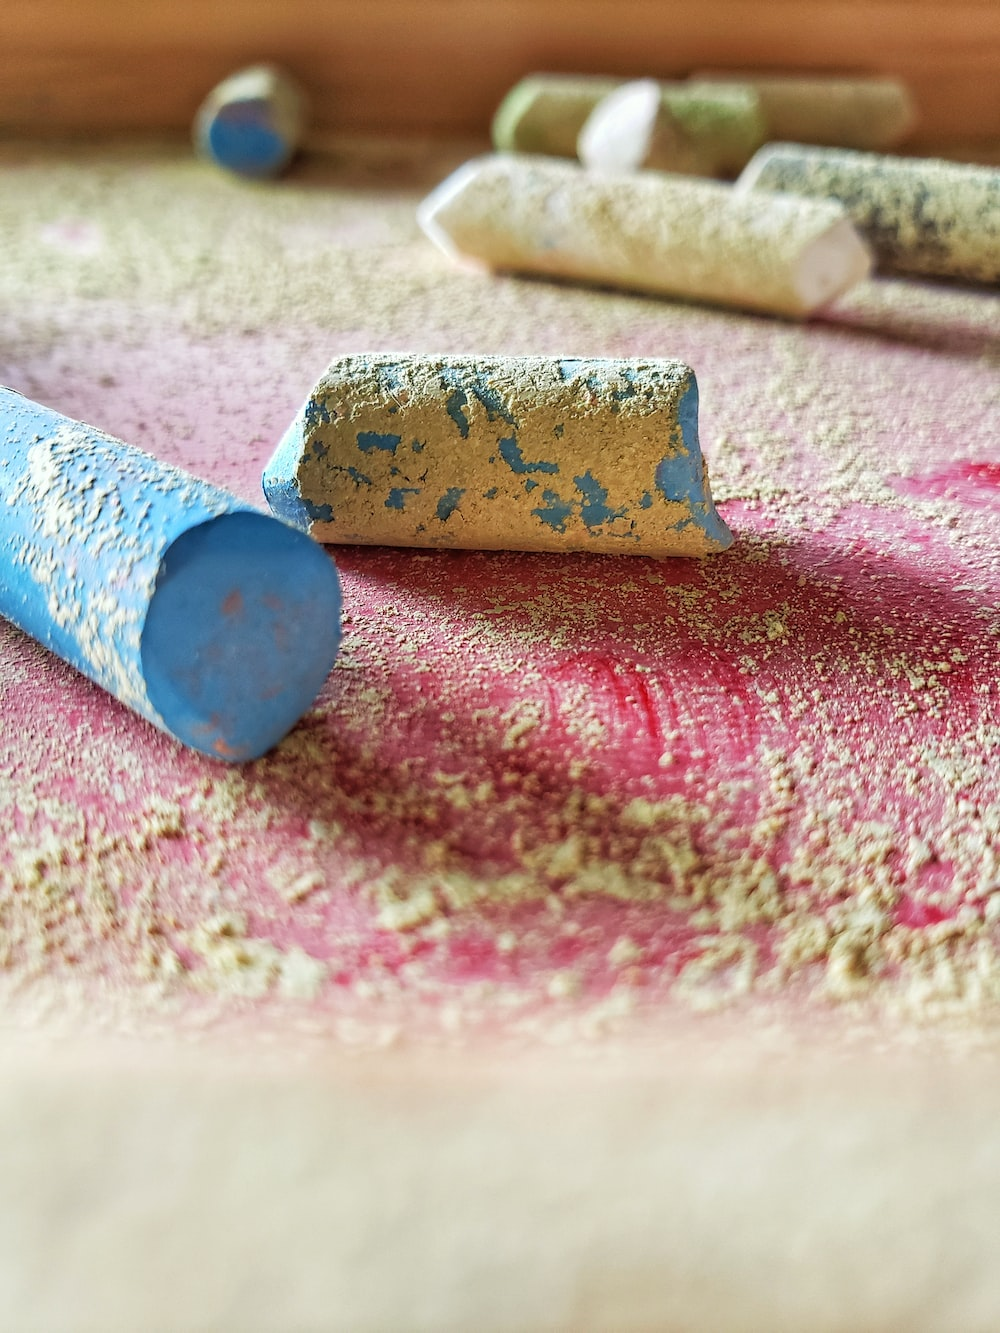 blue and brown rolled paper on pink and white textile